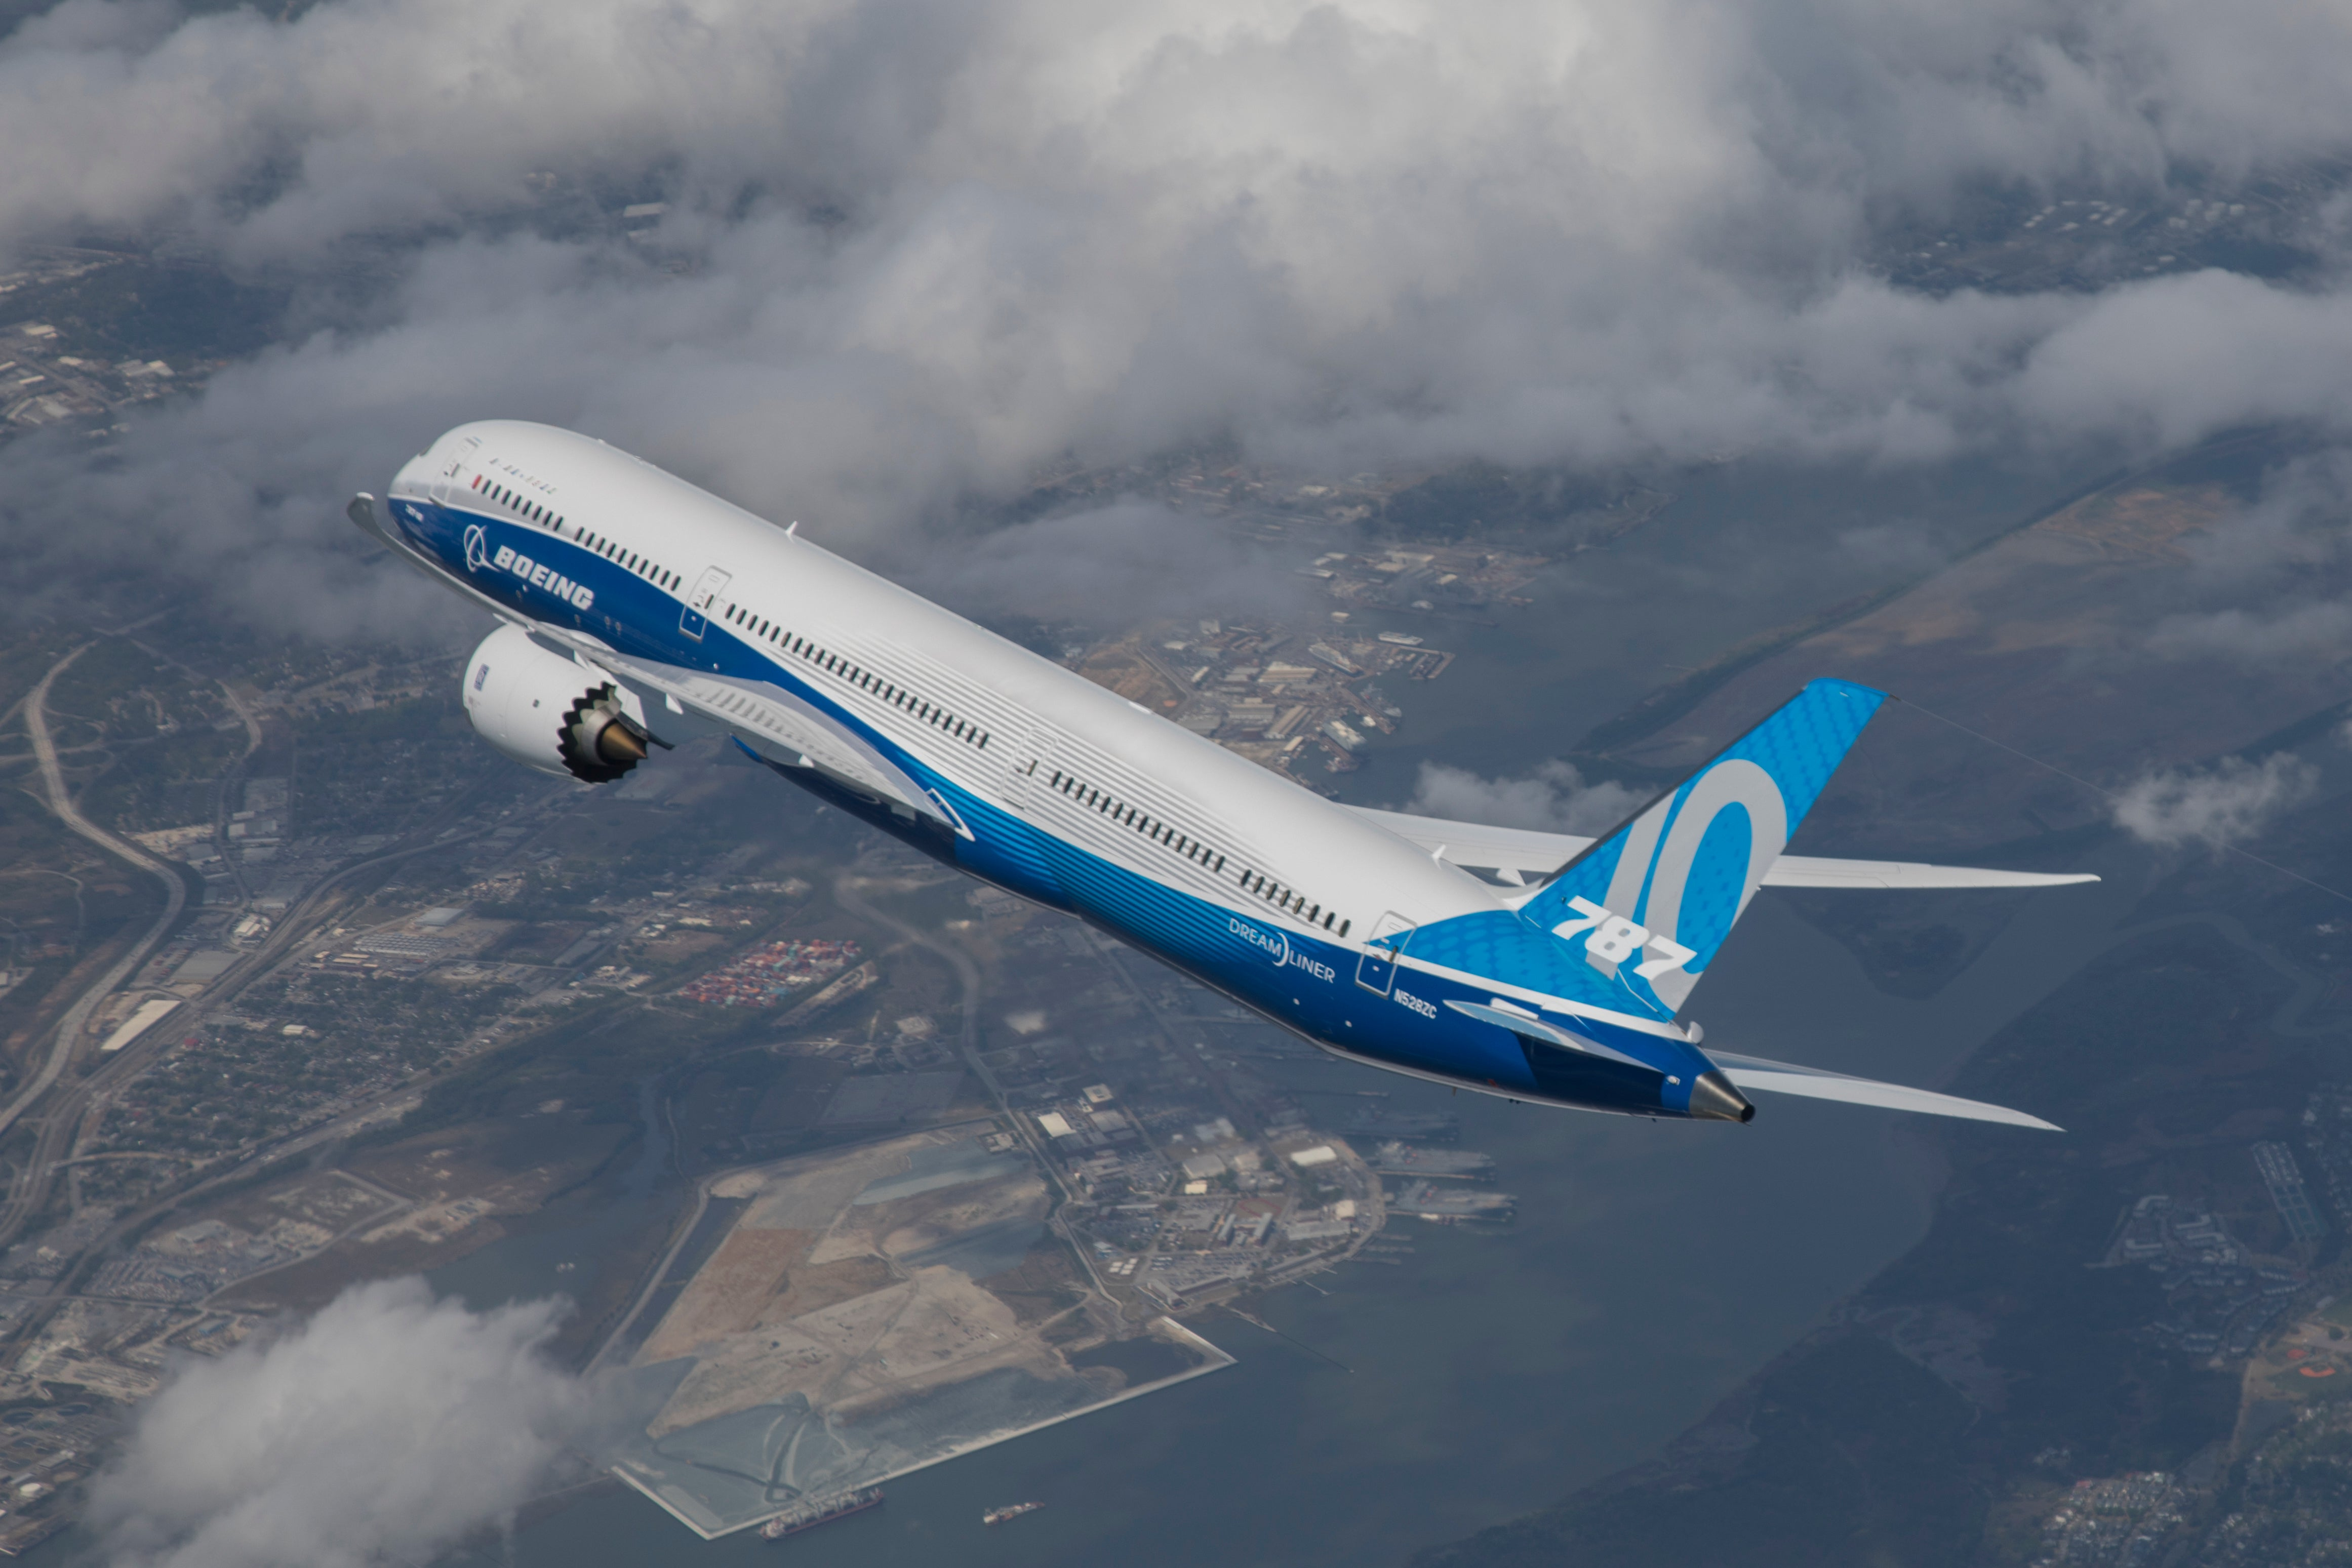 Why Shares of Boeing Lost Nearly Half Their Value in March | The Motley Fool